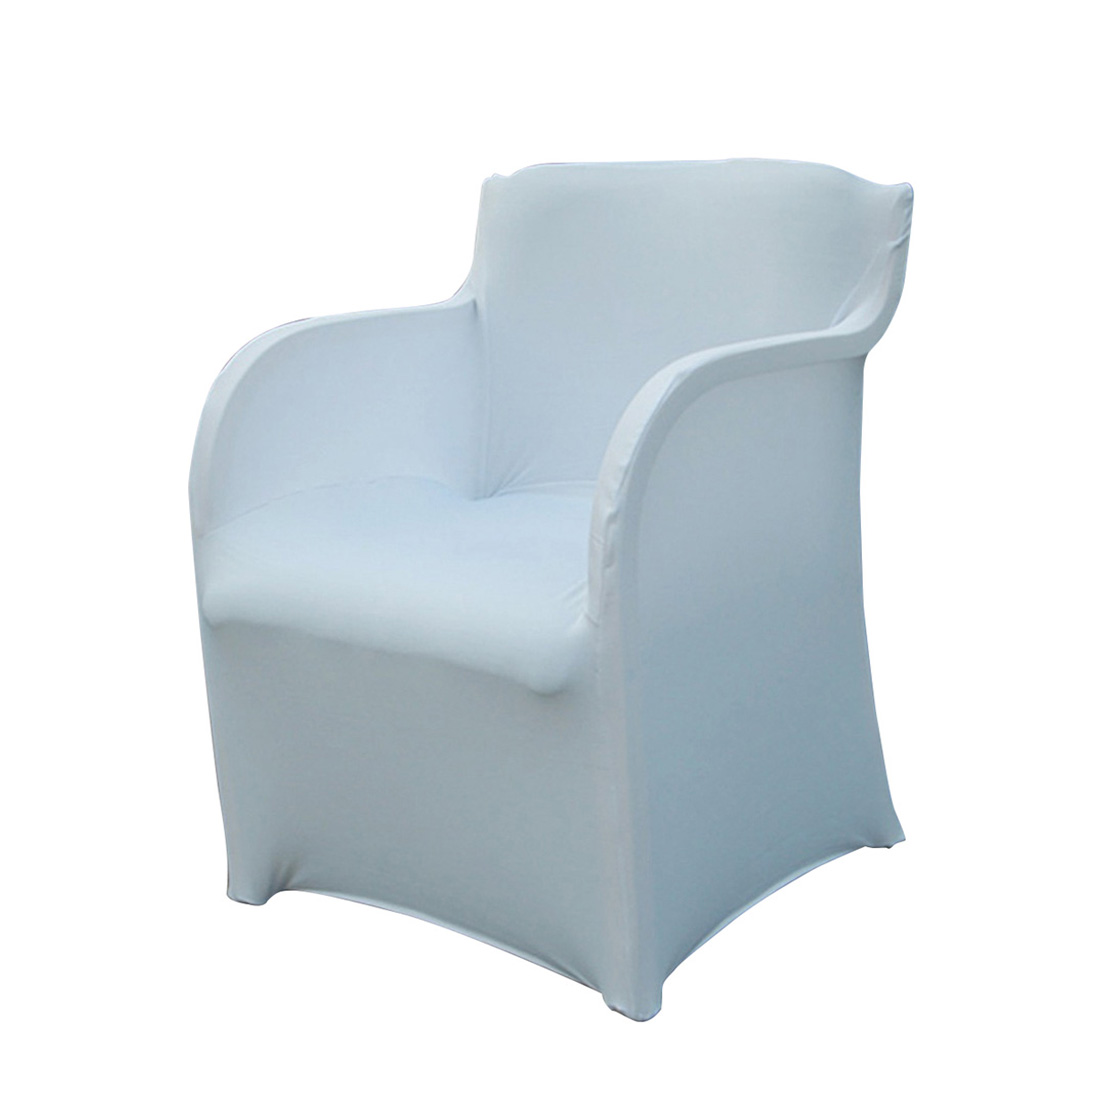 Top Selling Armchair Slipcover Spandex Stretch Arm Chair Meliputi Wedding Party Hotel Home Supplies 73 * 55CM